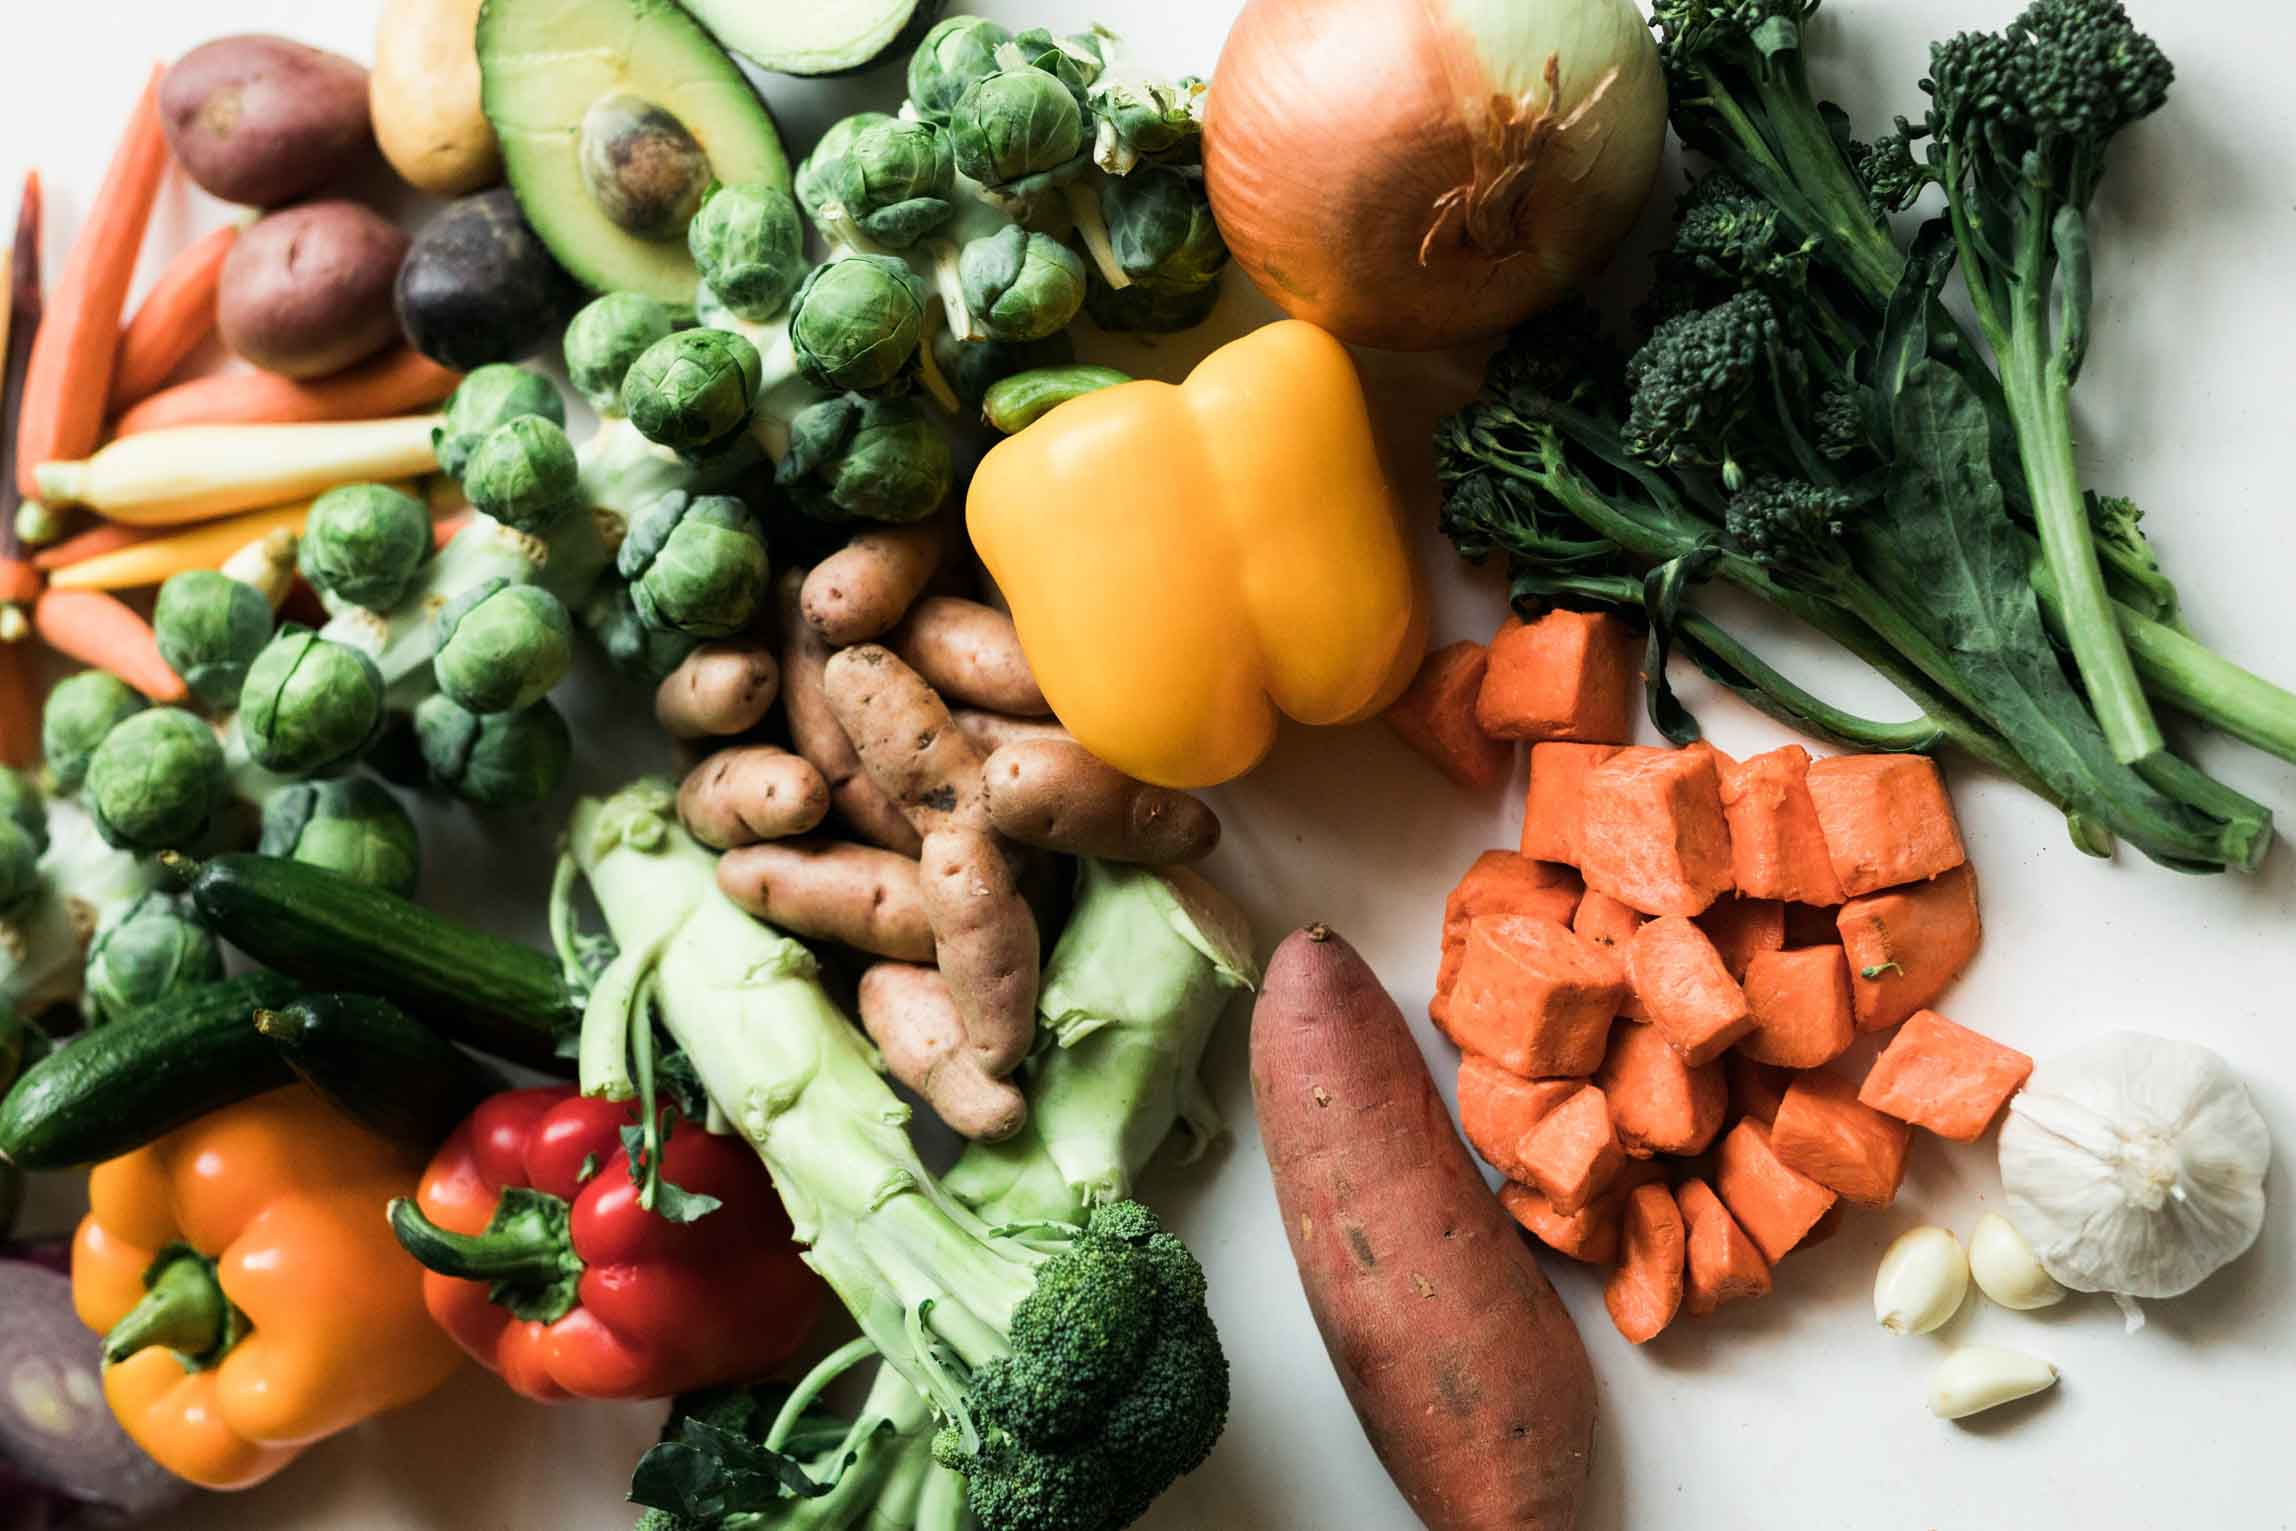 seasonal vegetables and fruit in Australia